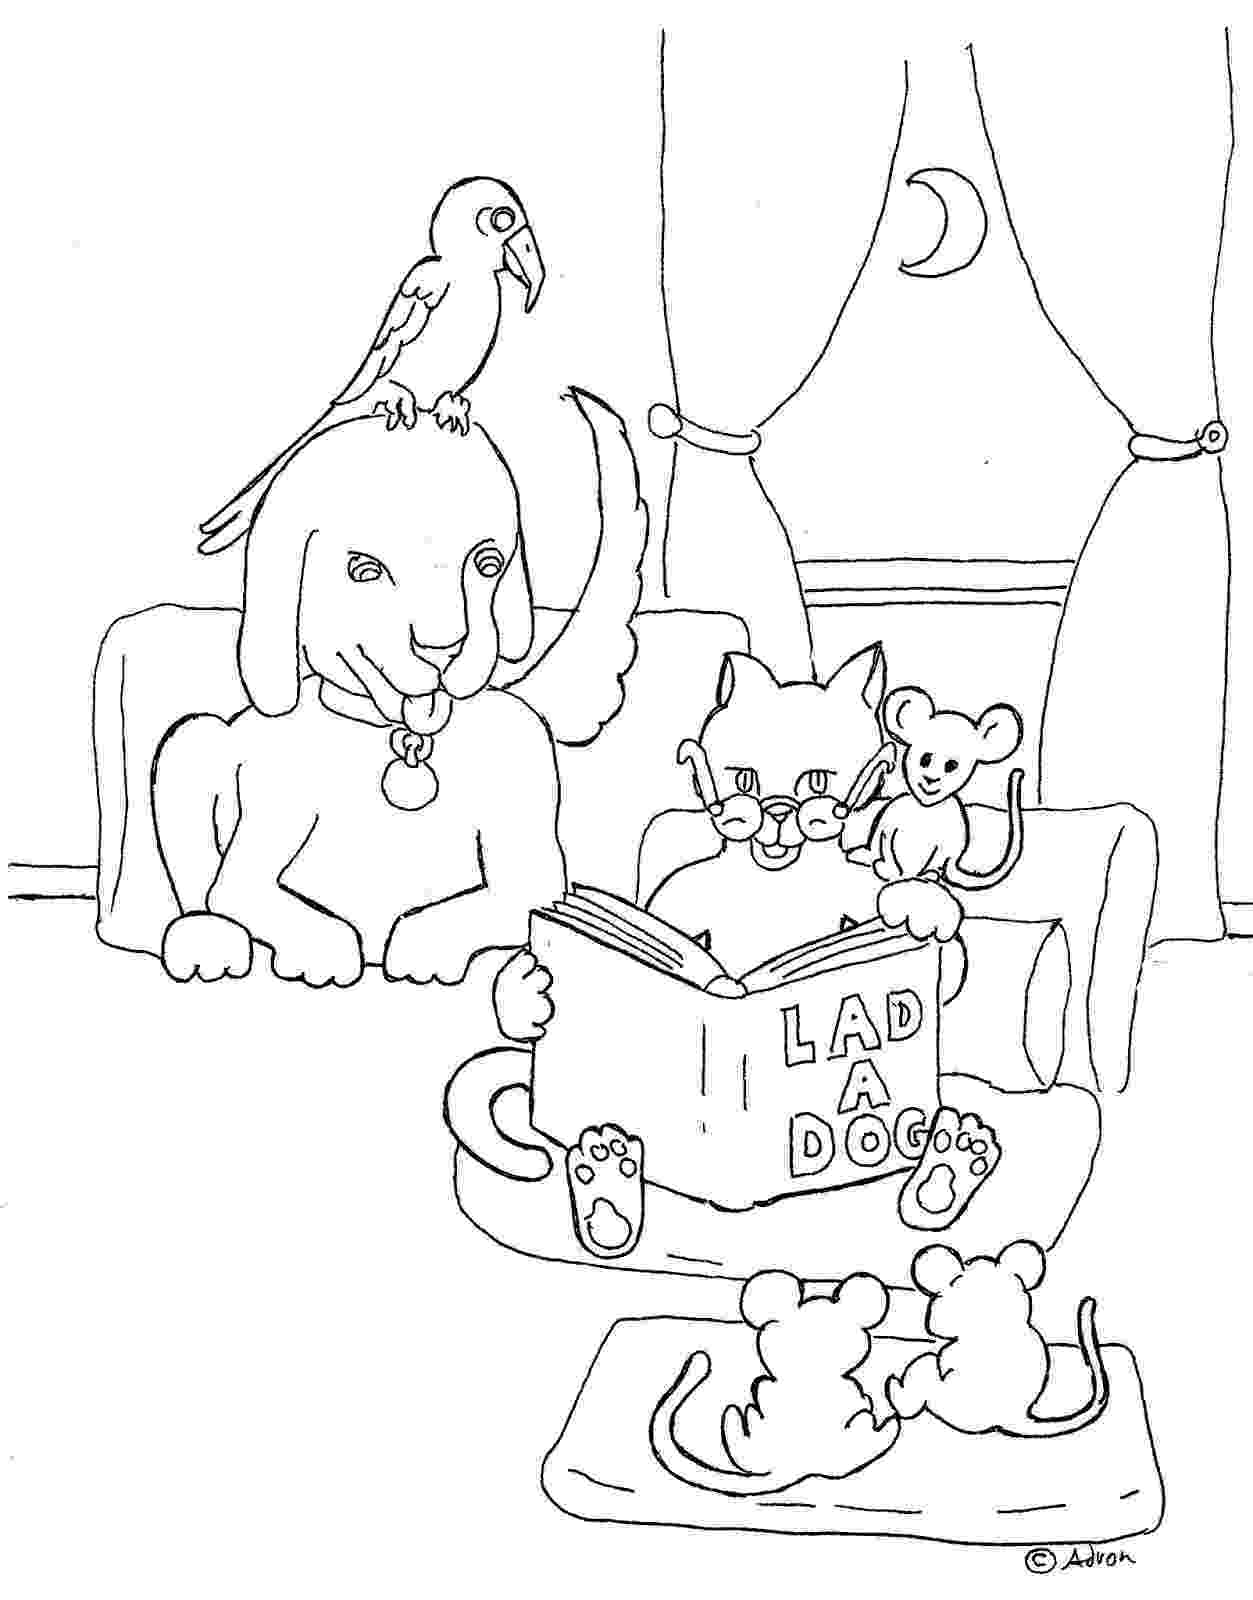 animal reading coloring page coloring pages for kids by mr adron cat reading book animal page reading coloring